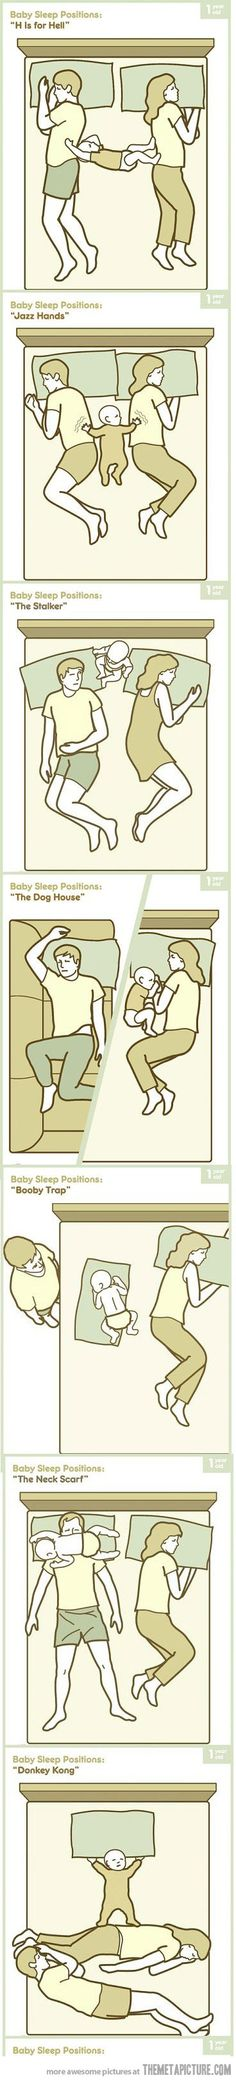 This was us last night! Our child has never slept in bed with us before and never will again... Lol